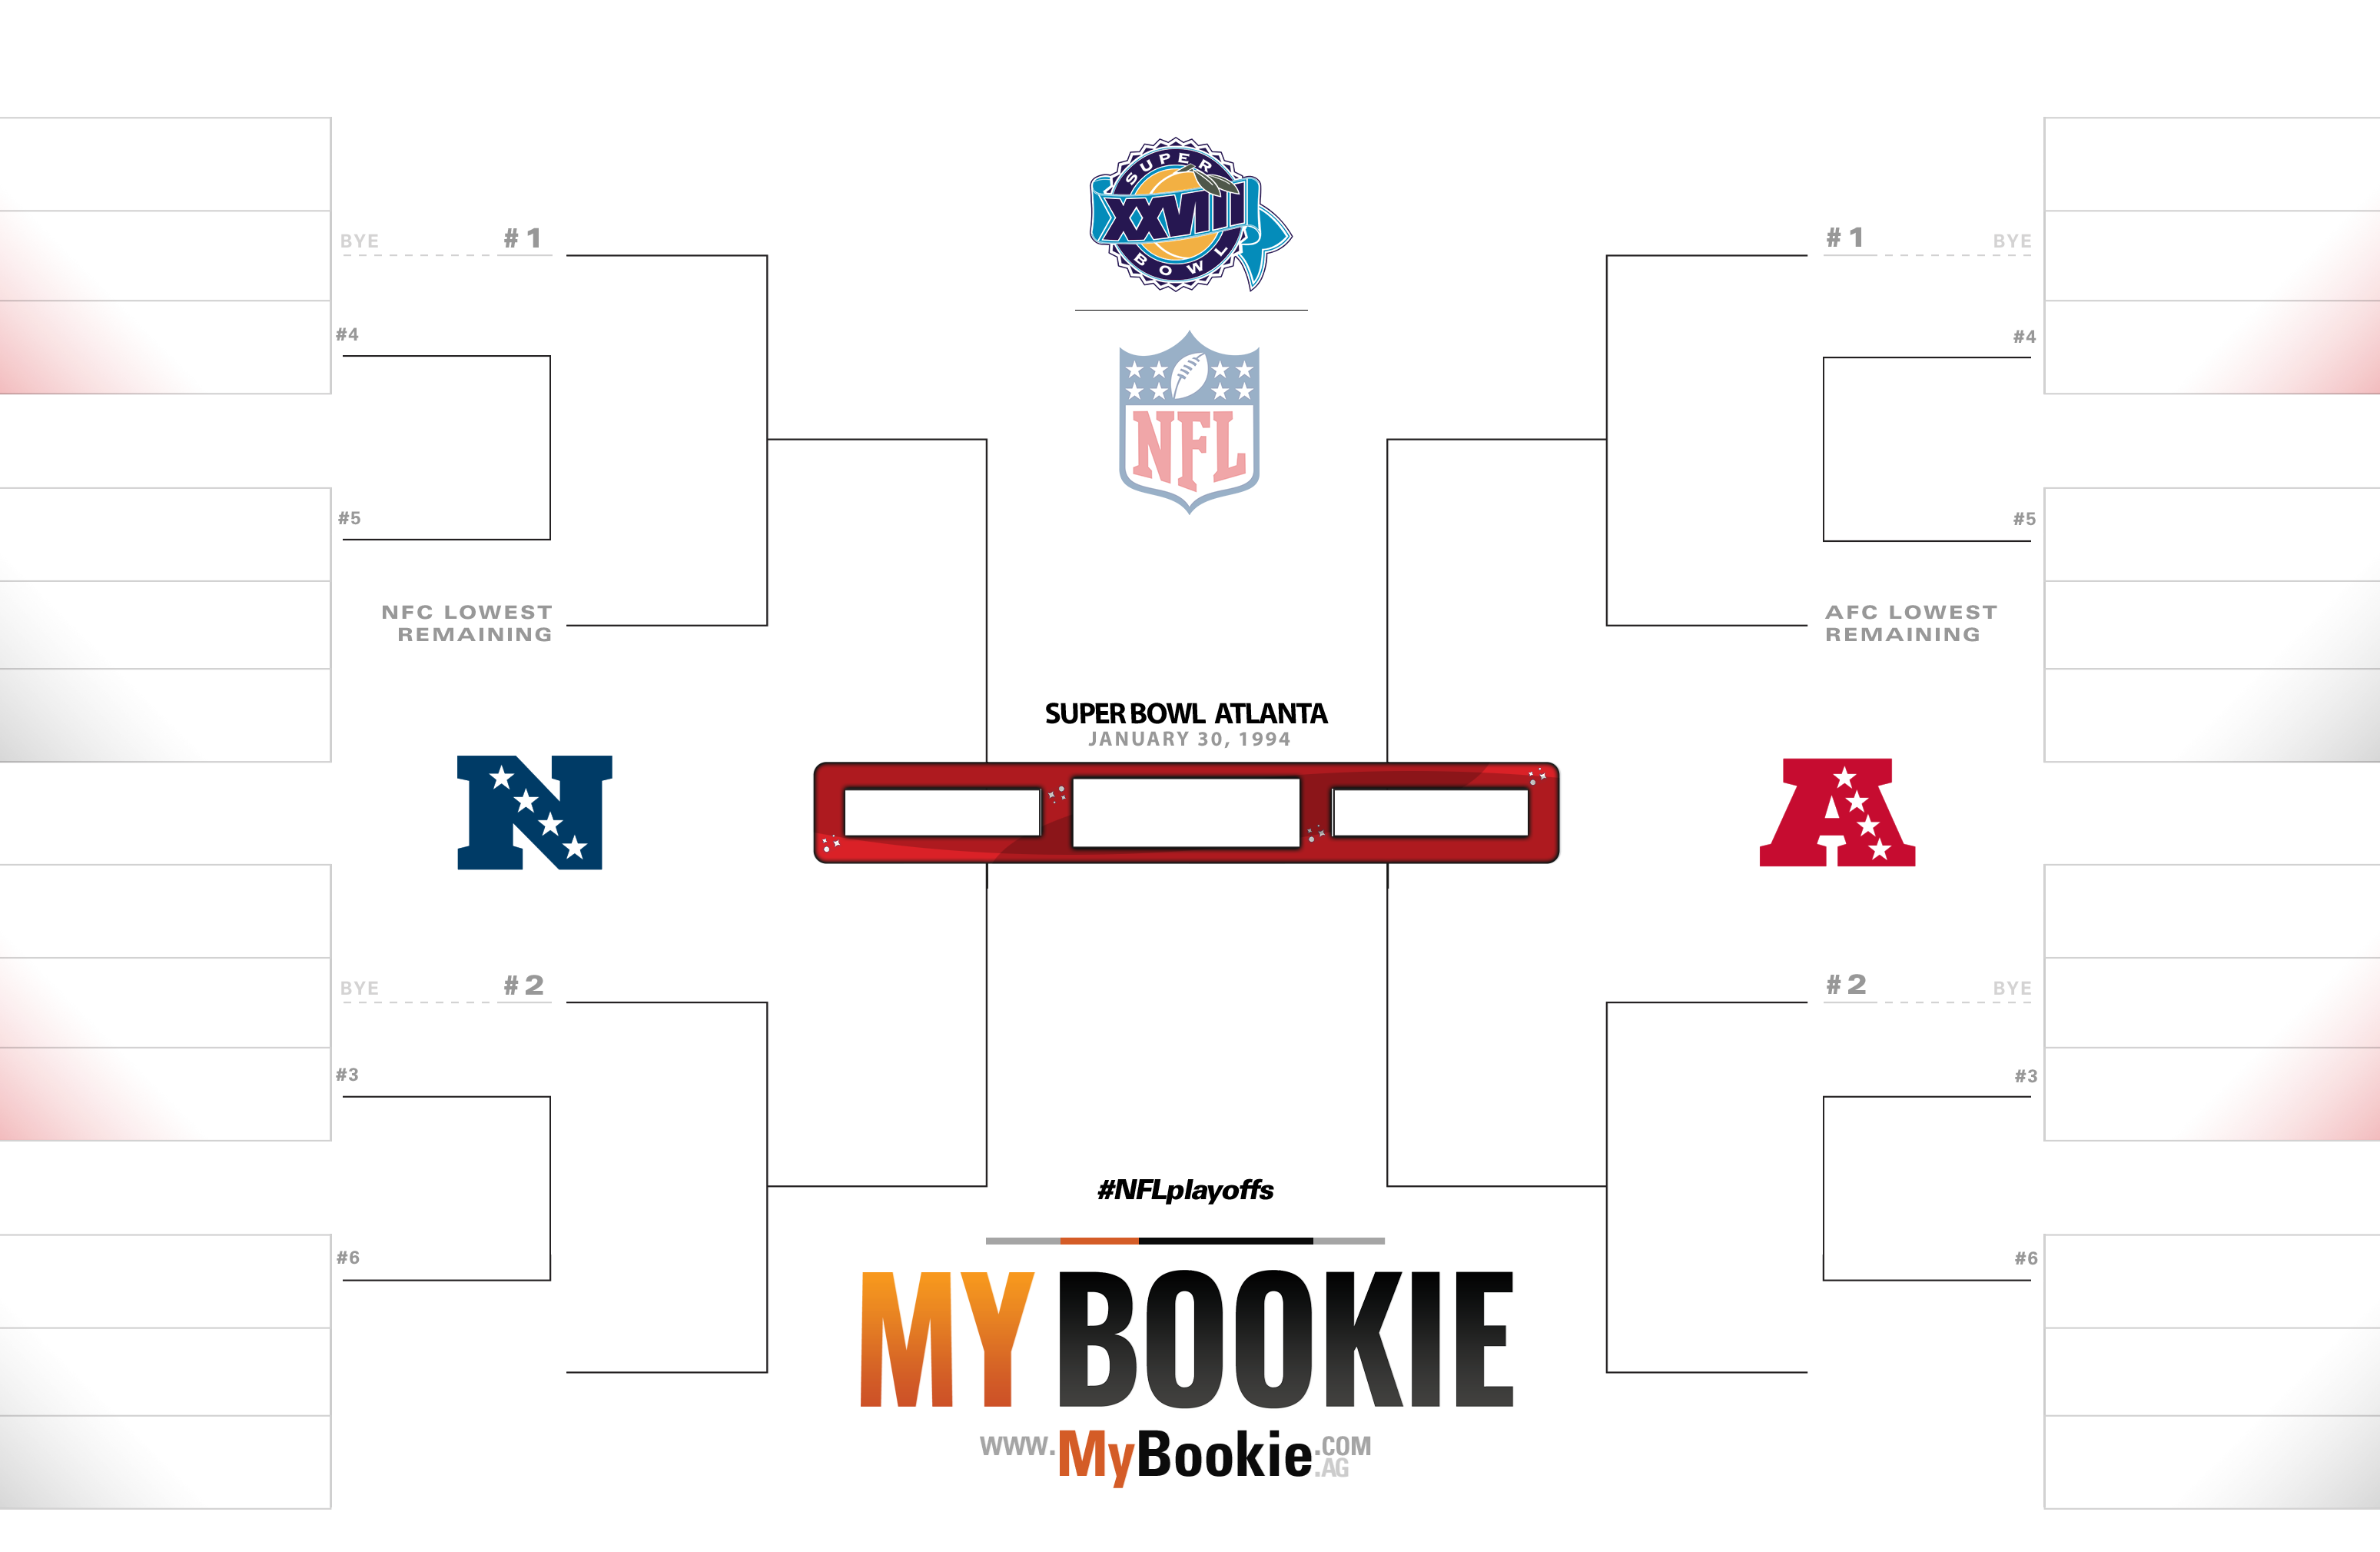 NFL Playoffs / Superbowl 1994 Printable Bracket